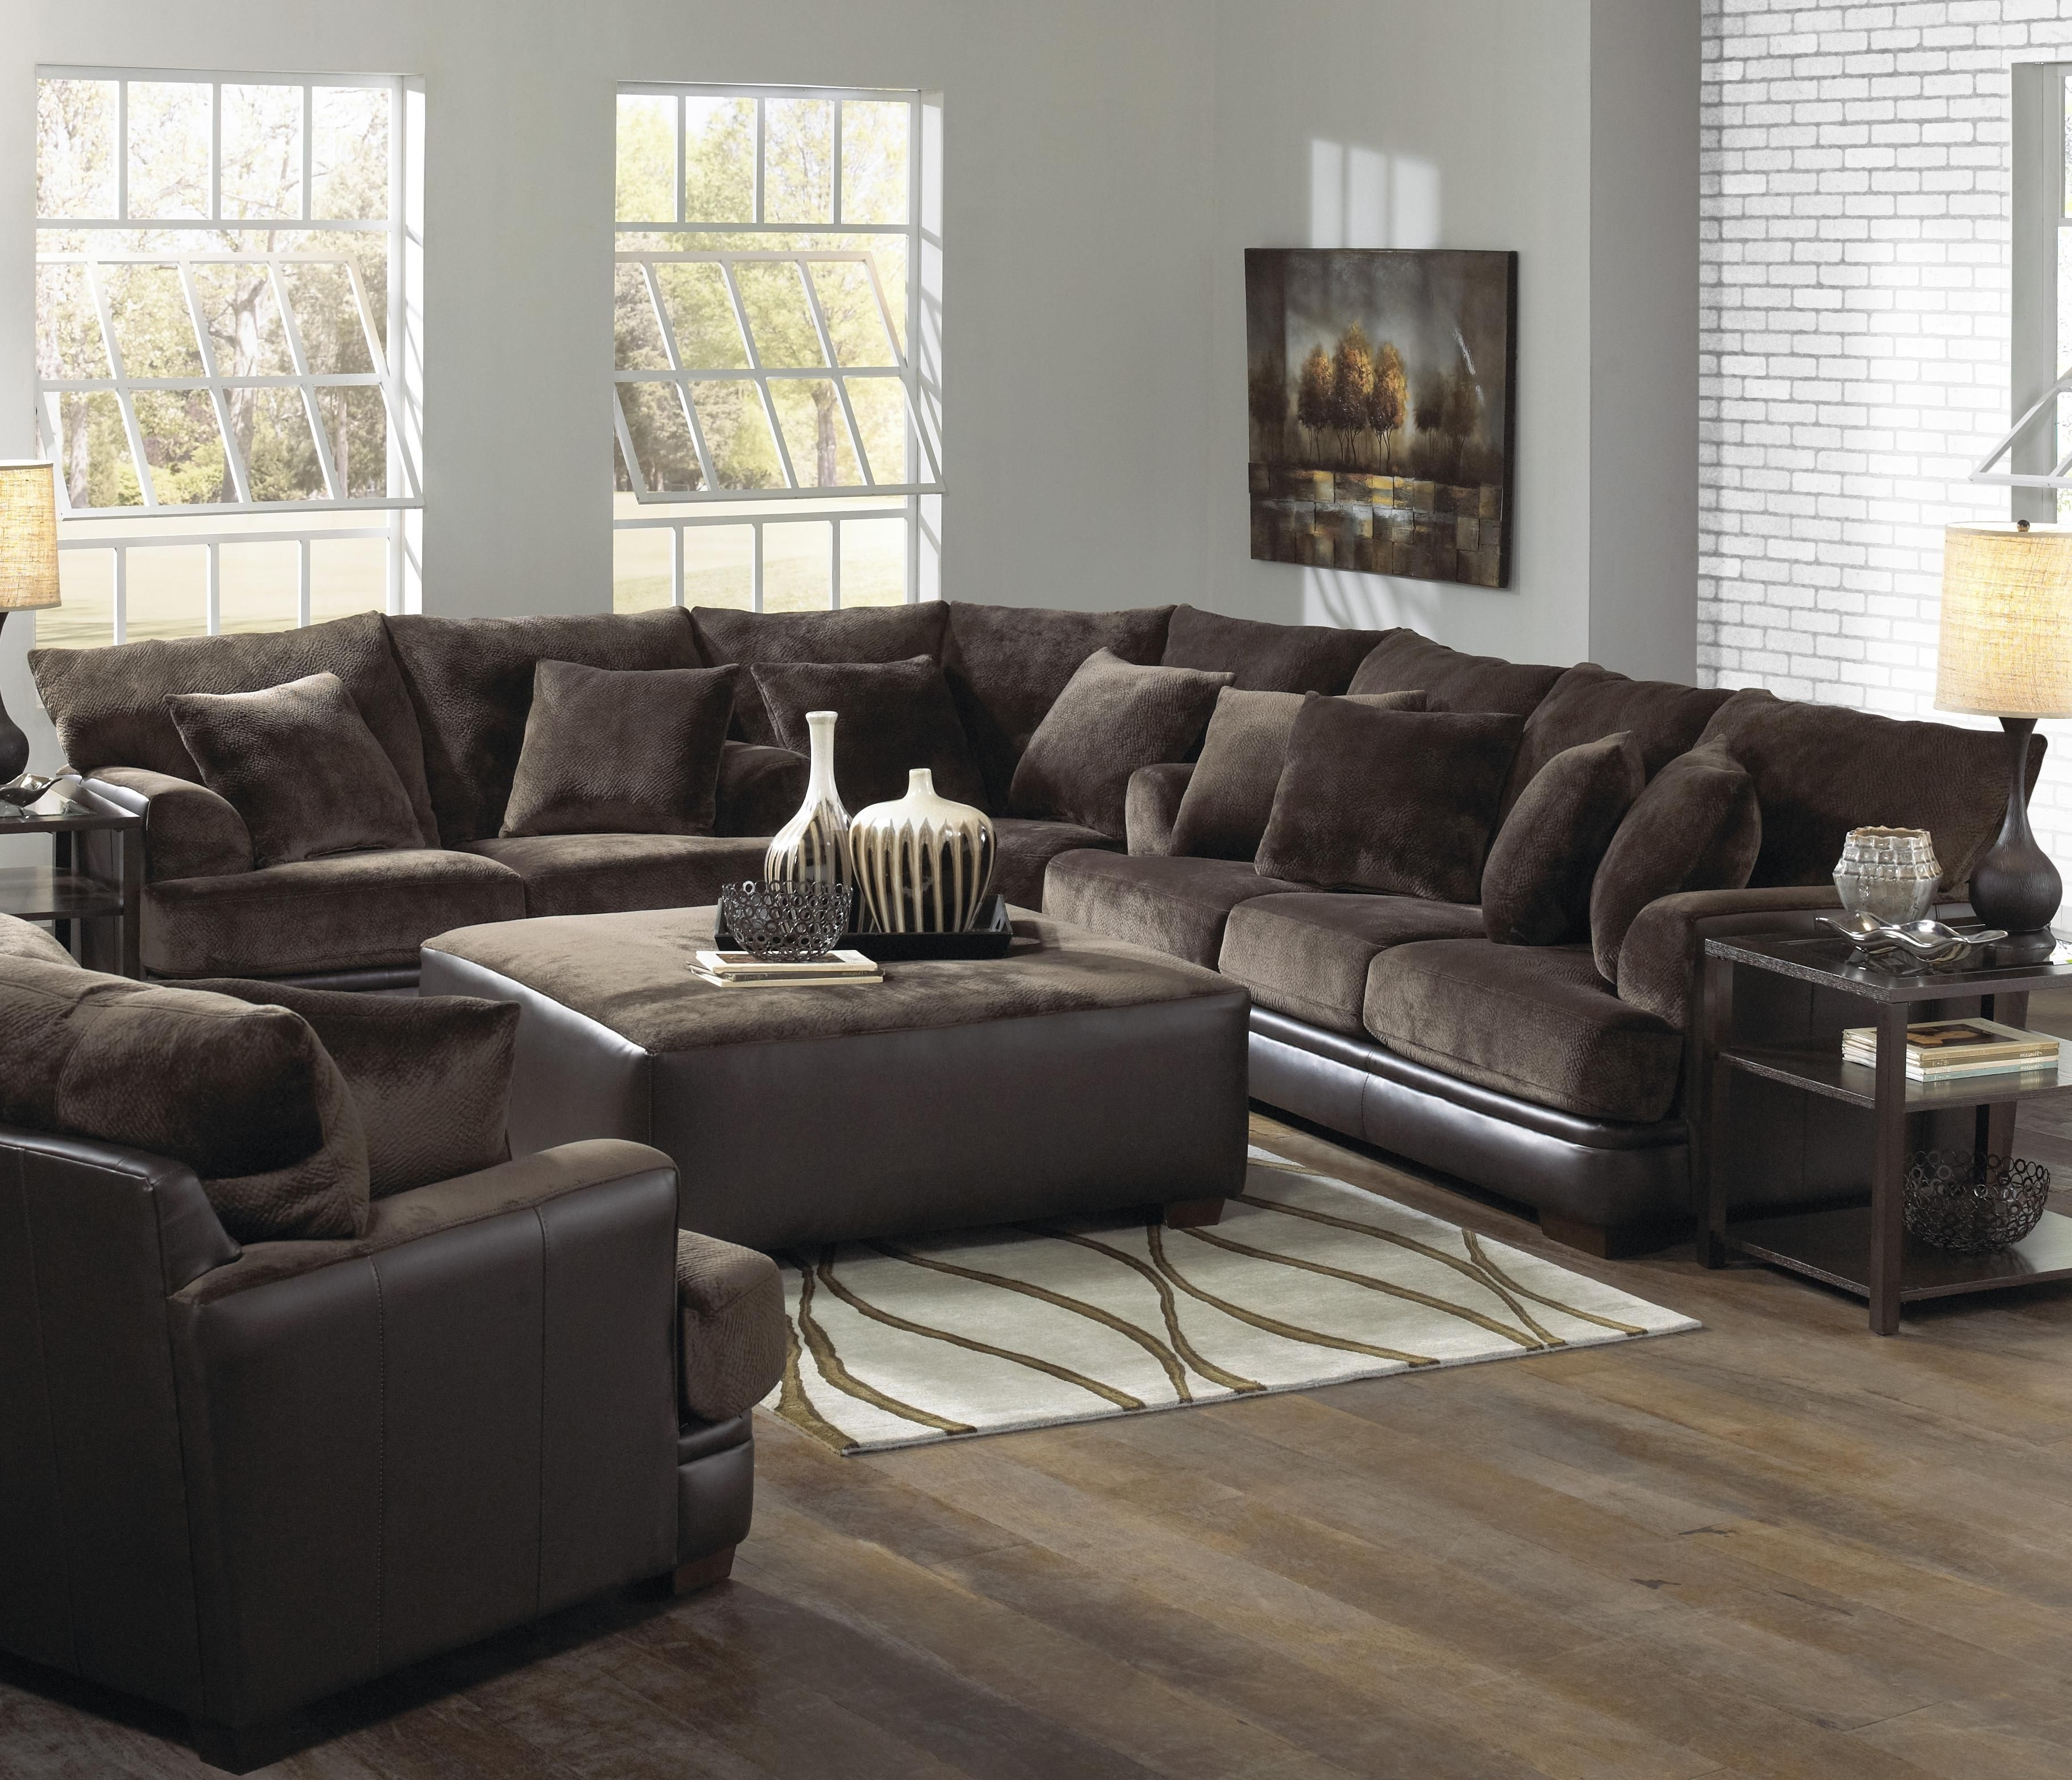 Clubanfi With Regard To Grande Prairie Ab Sectional Sofas (View 5 of 20)